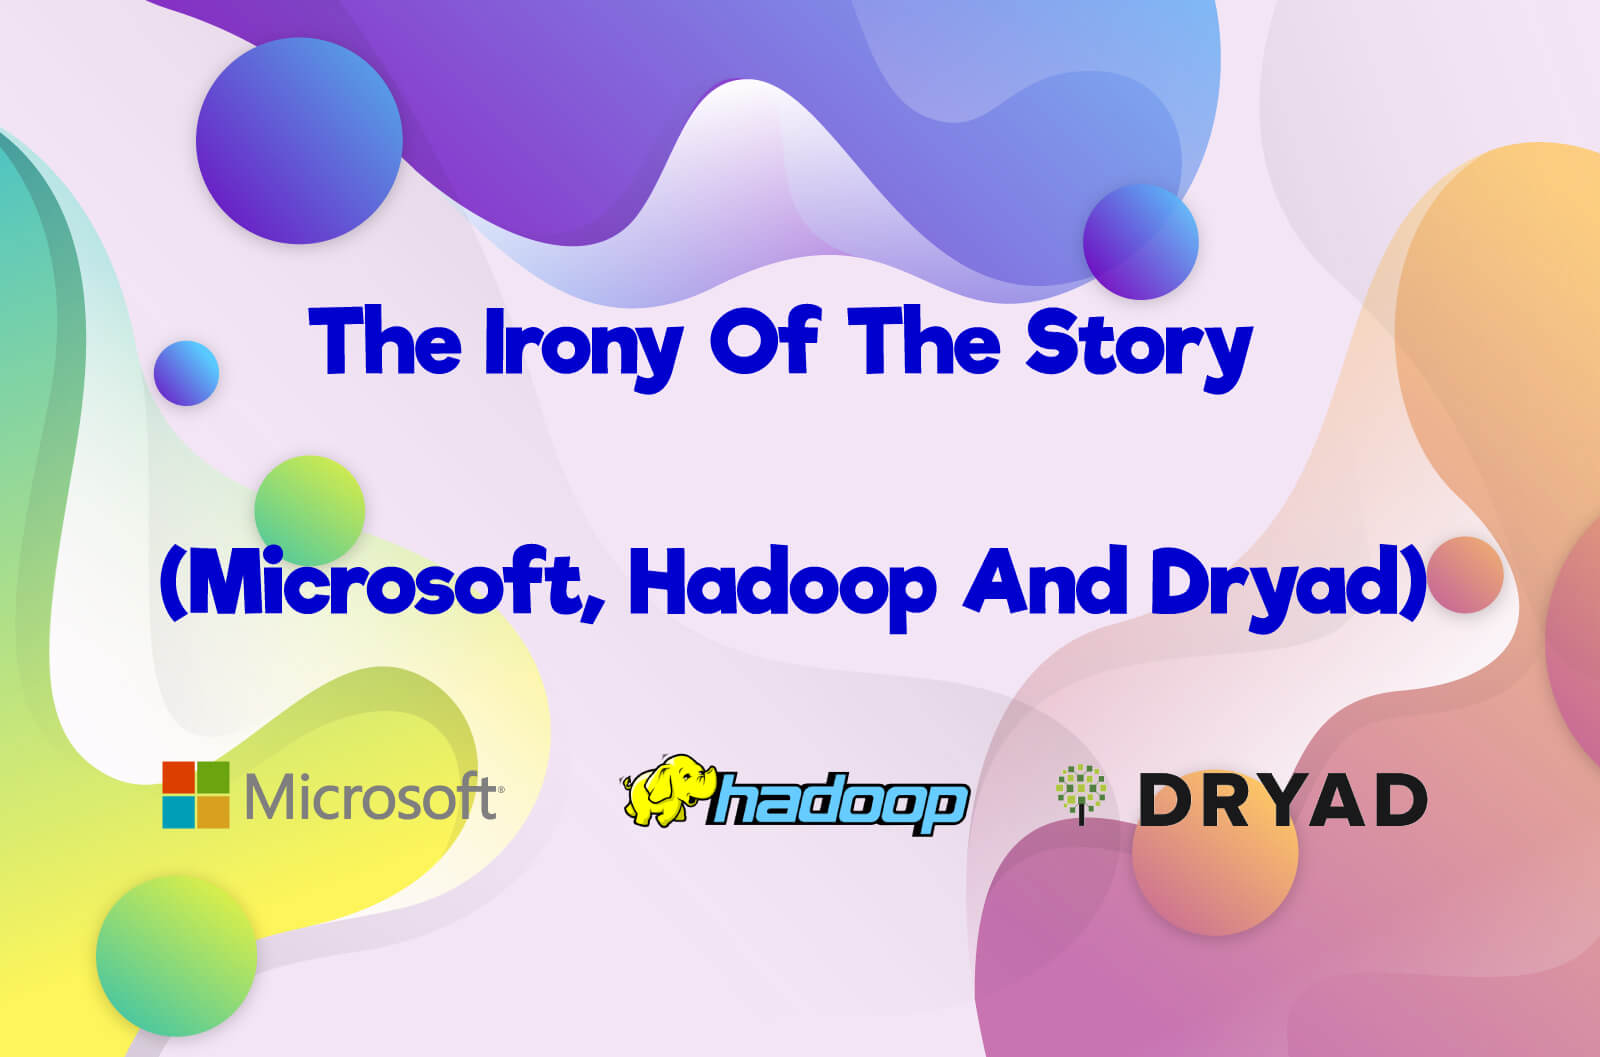 The irony of the story (Microsoft, Hadoop and Dryad)